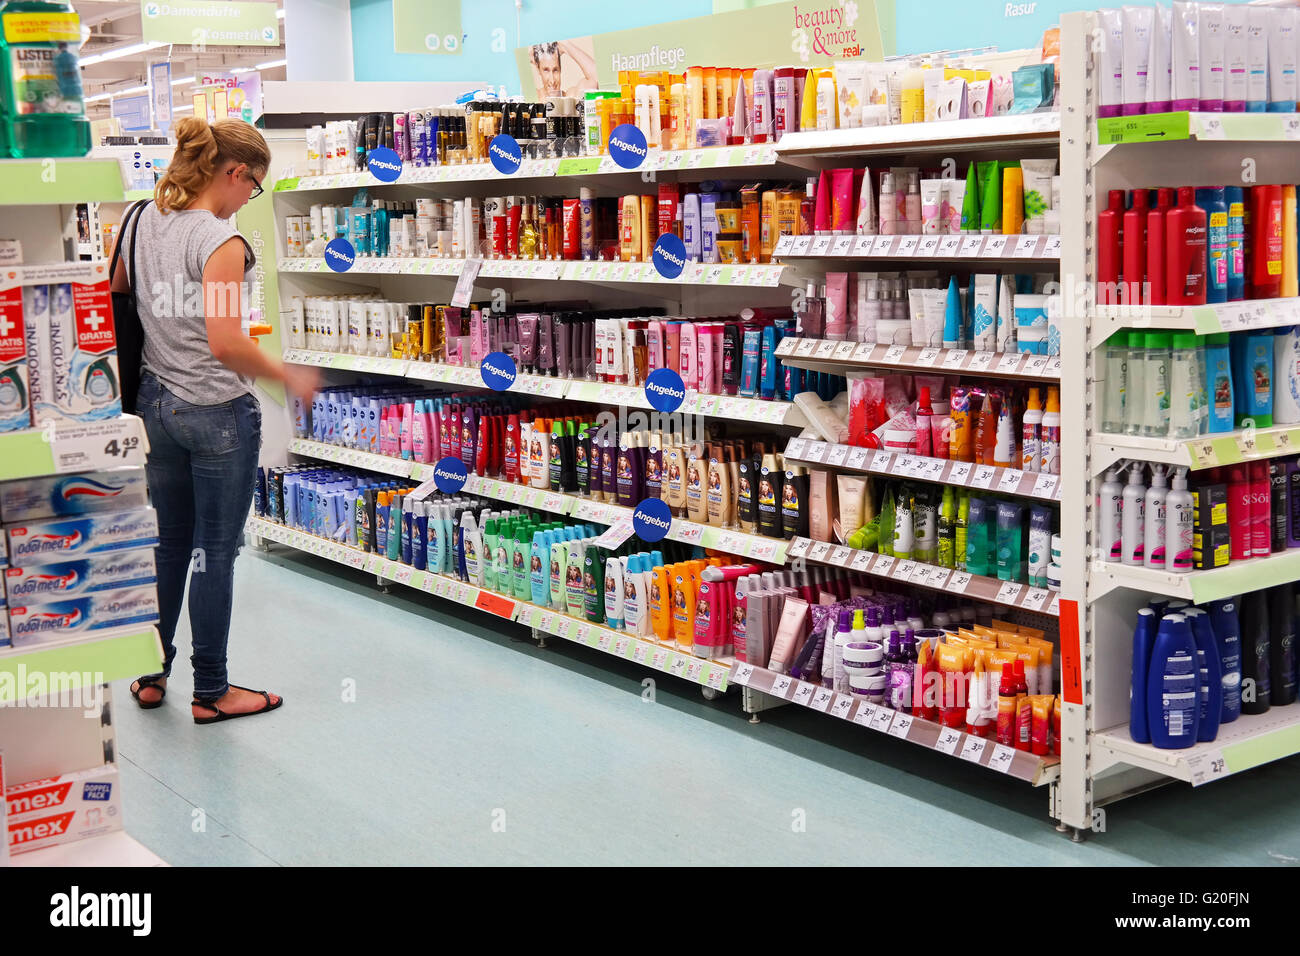 Young woman in front of shelves with toiletries in a Supermarket - Stock Image